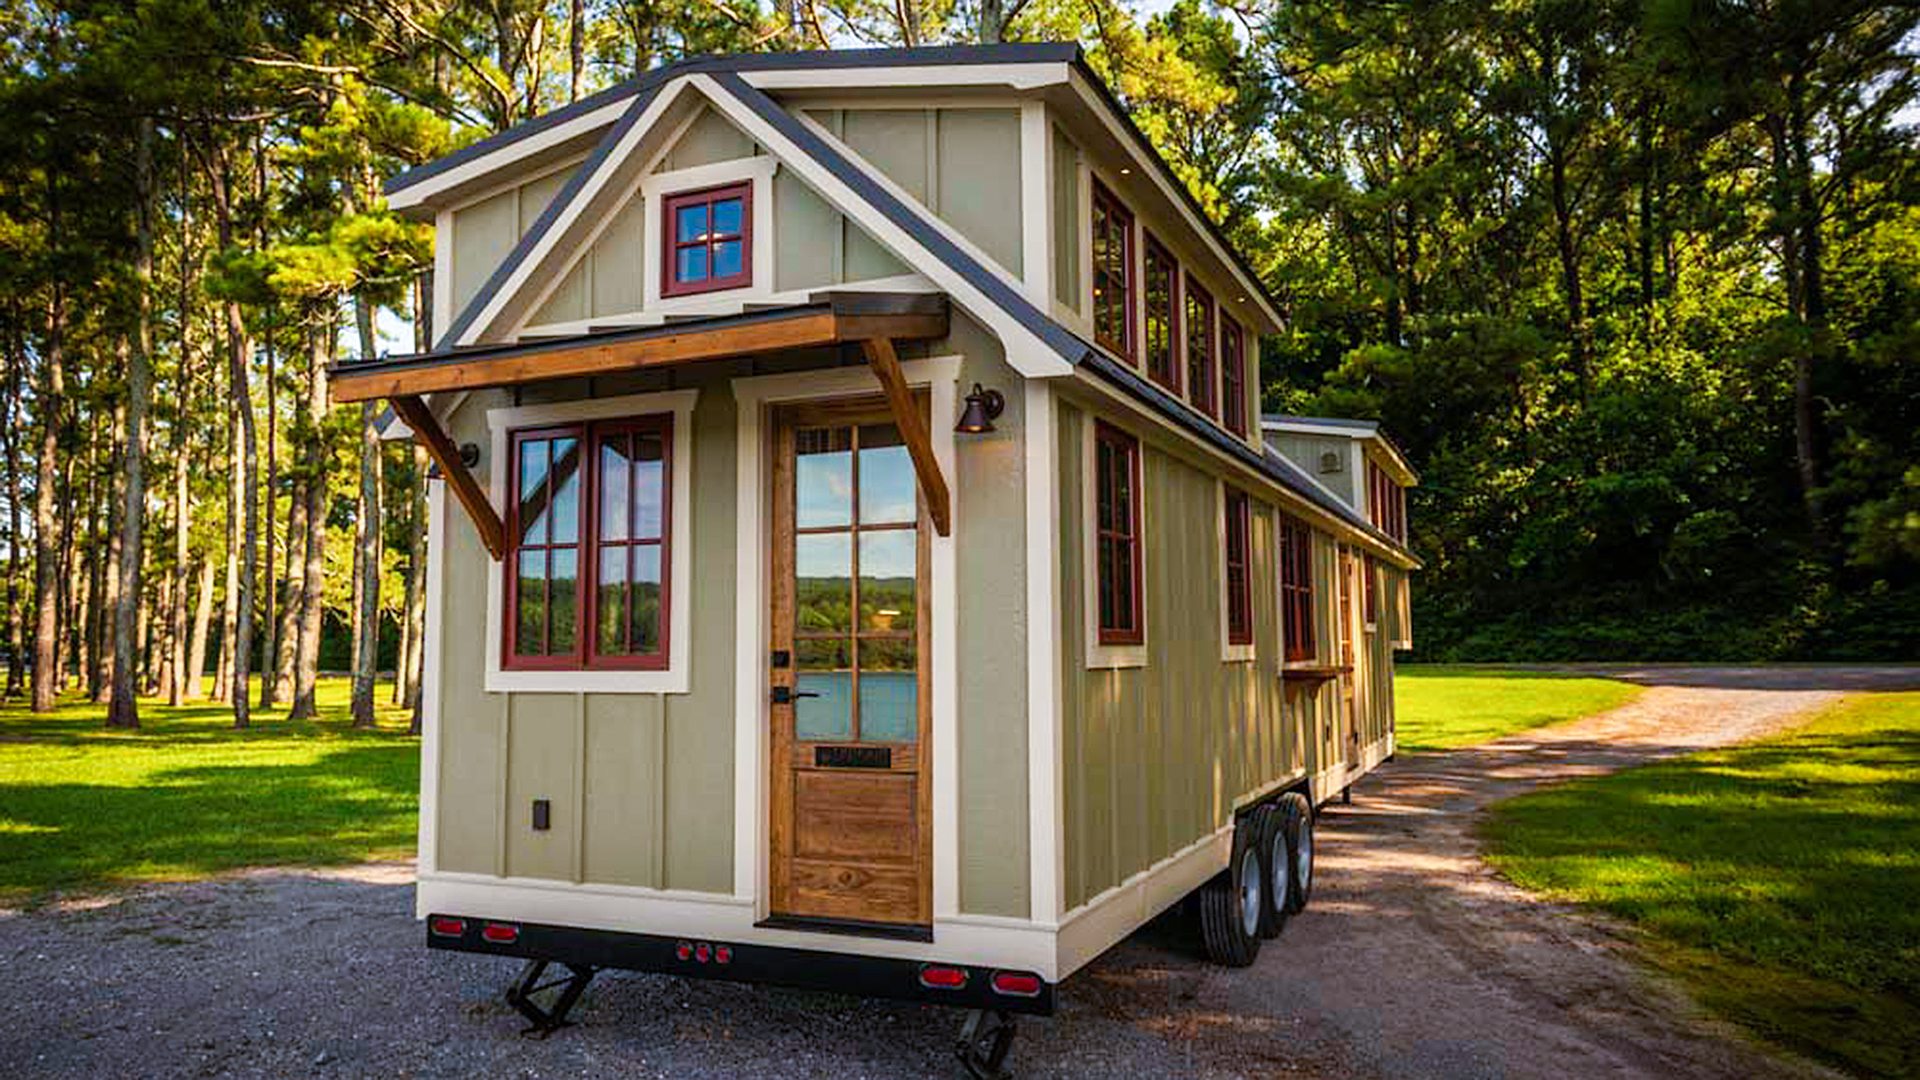 6 Tiny Houses With Huge Price Tags